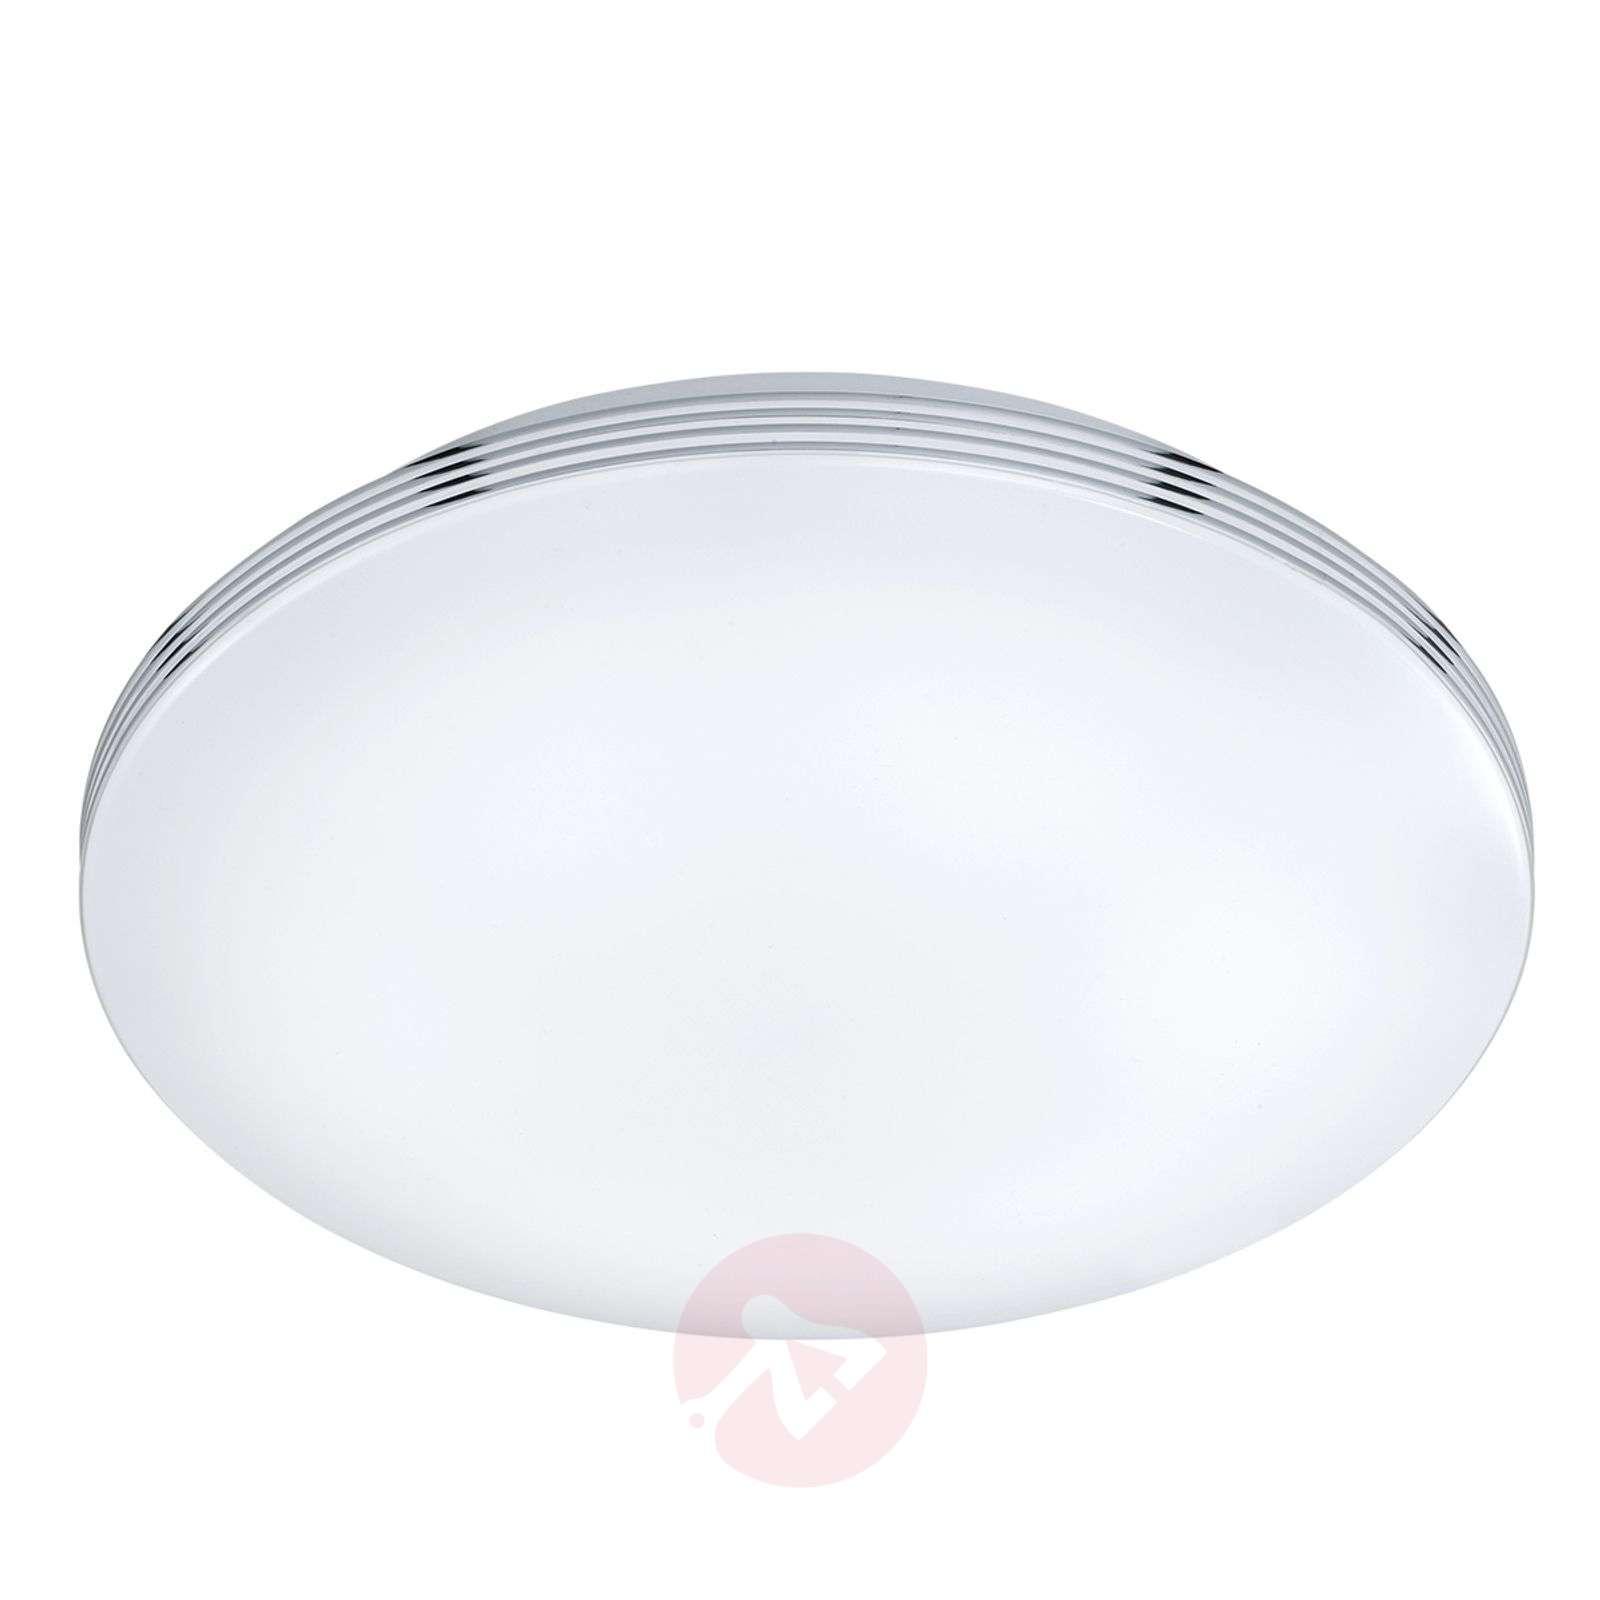 Dimmable Apart LED bathroom ceiling light-9005069-01